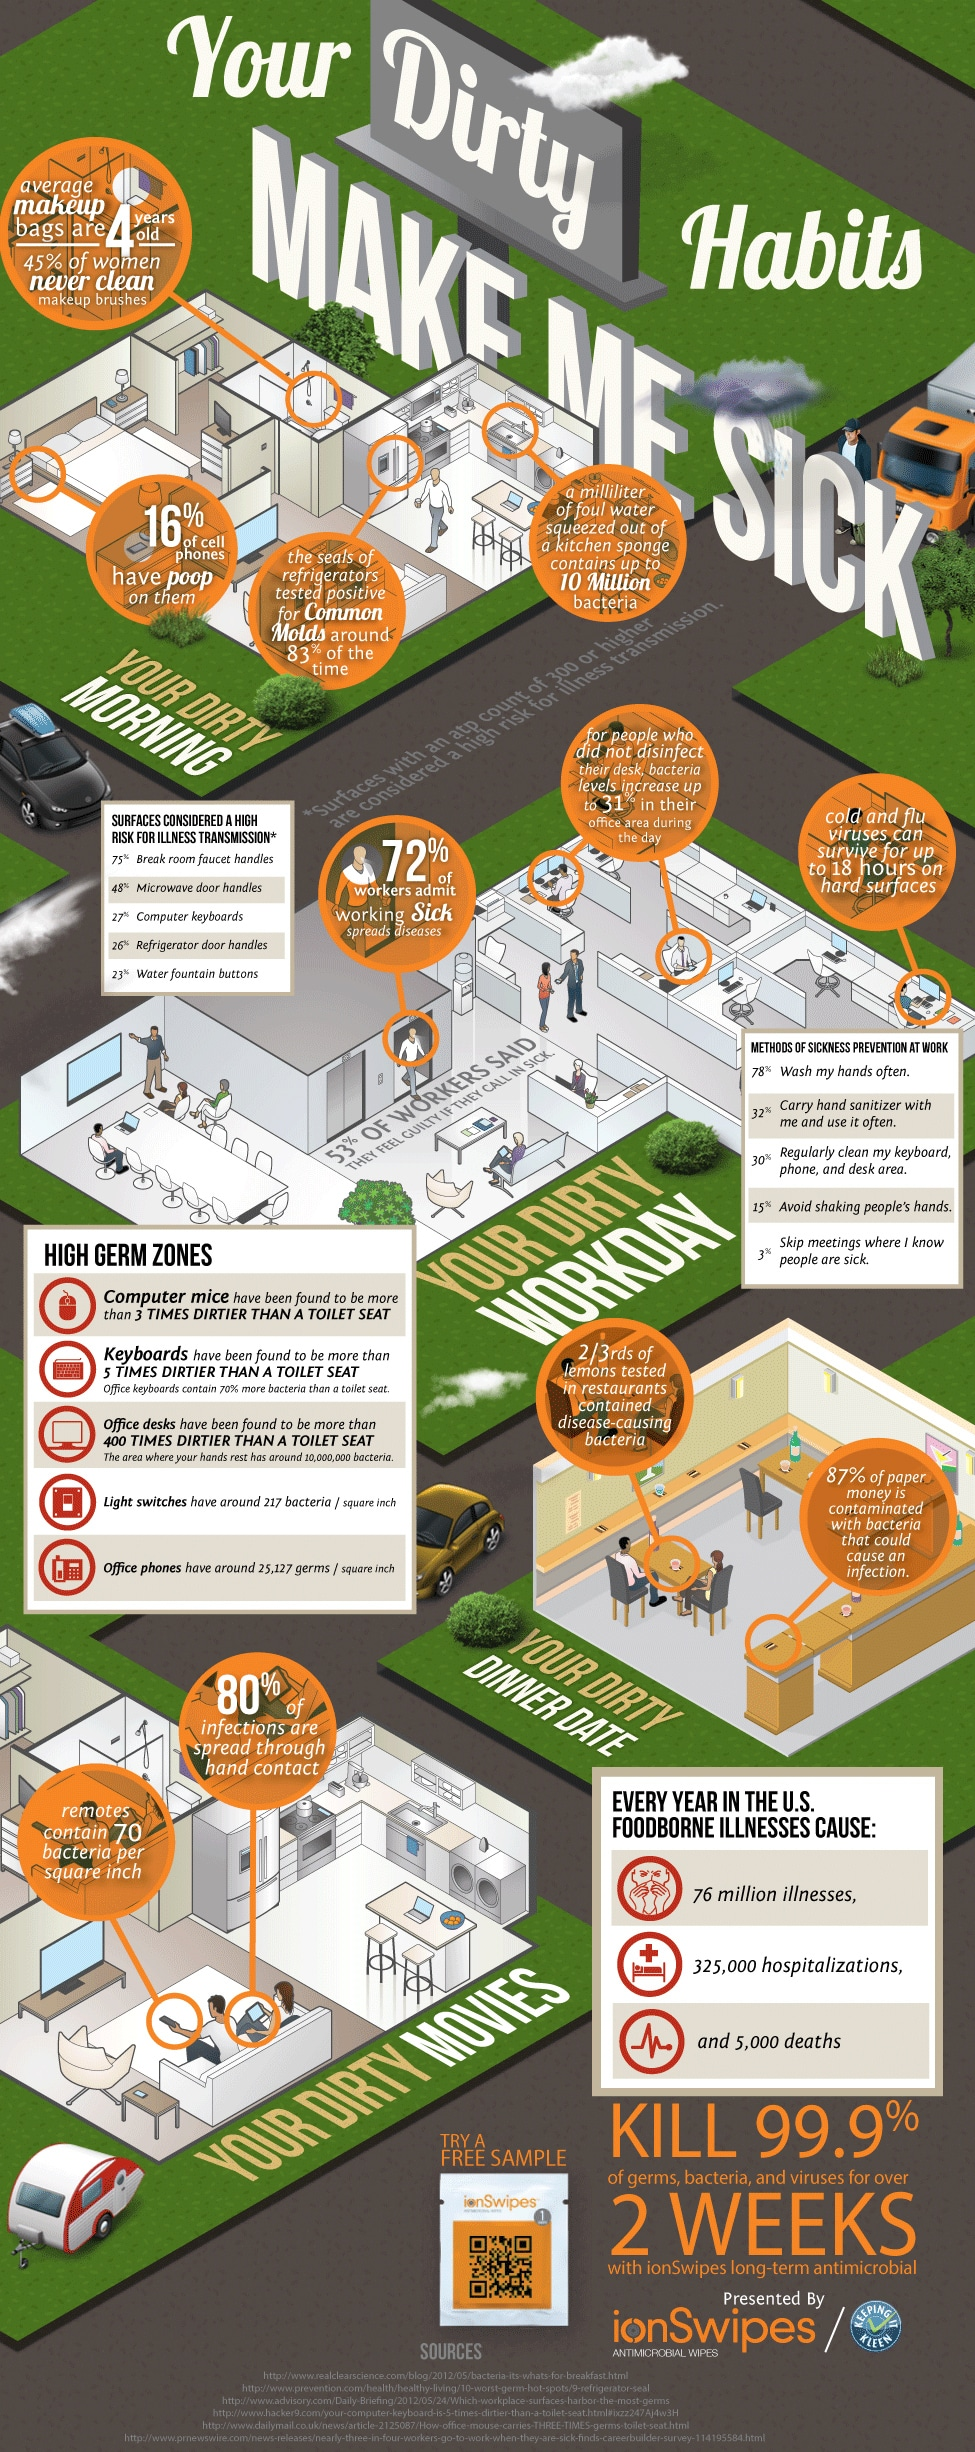 Stay Healthy: Avoid The Germ Zones During The Day [Infographic]